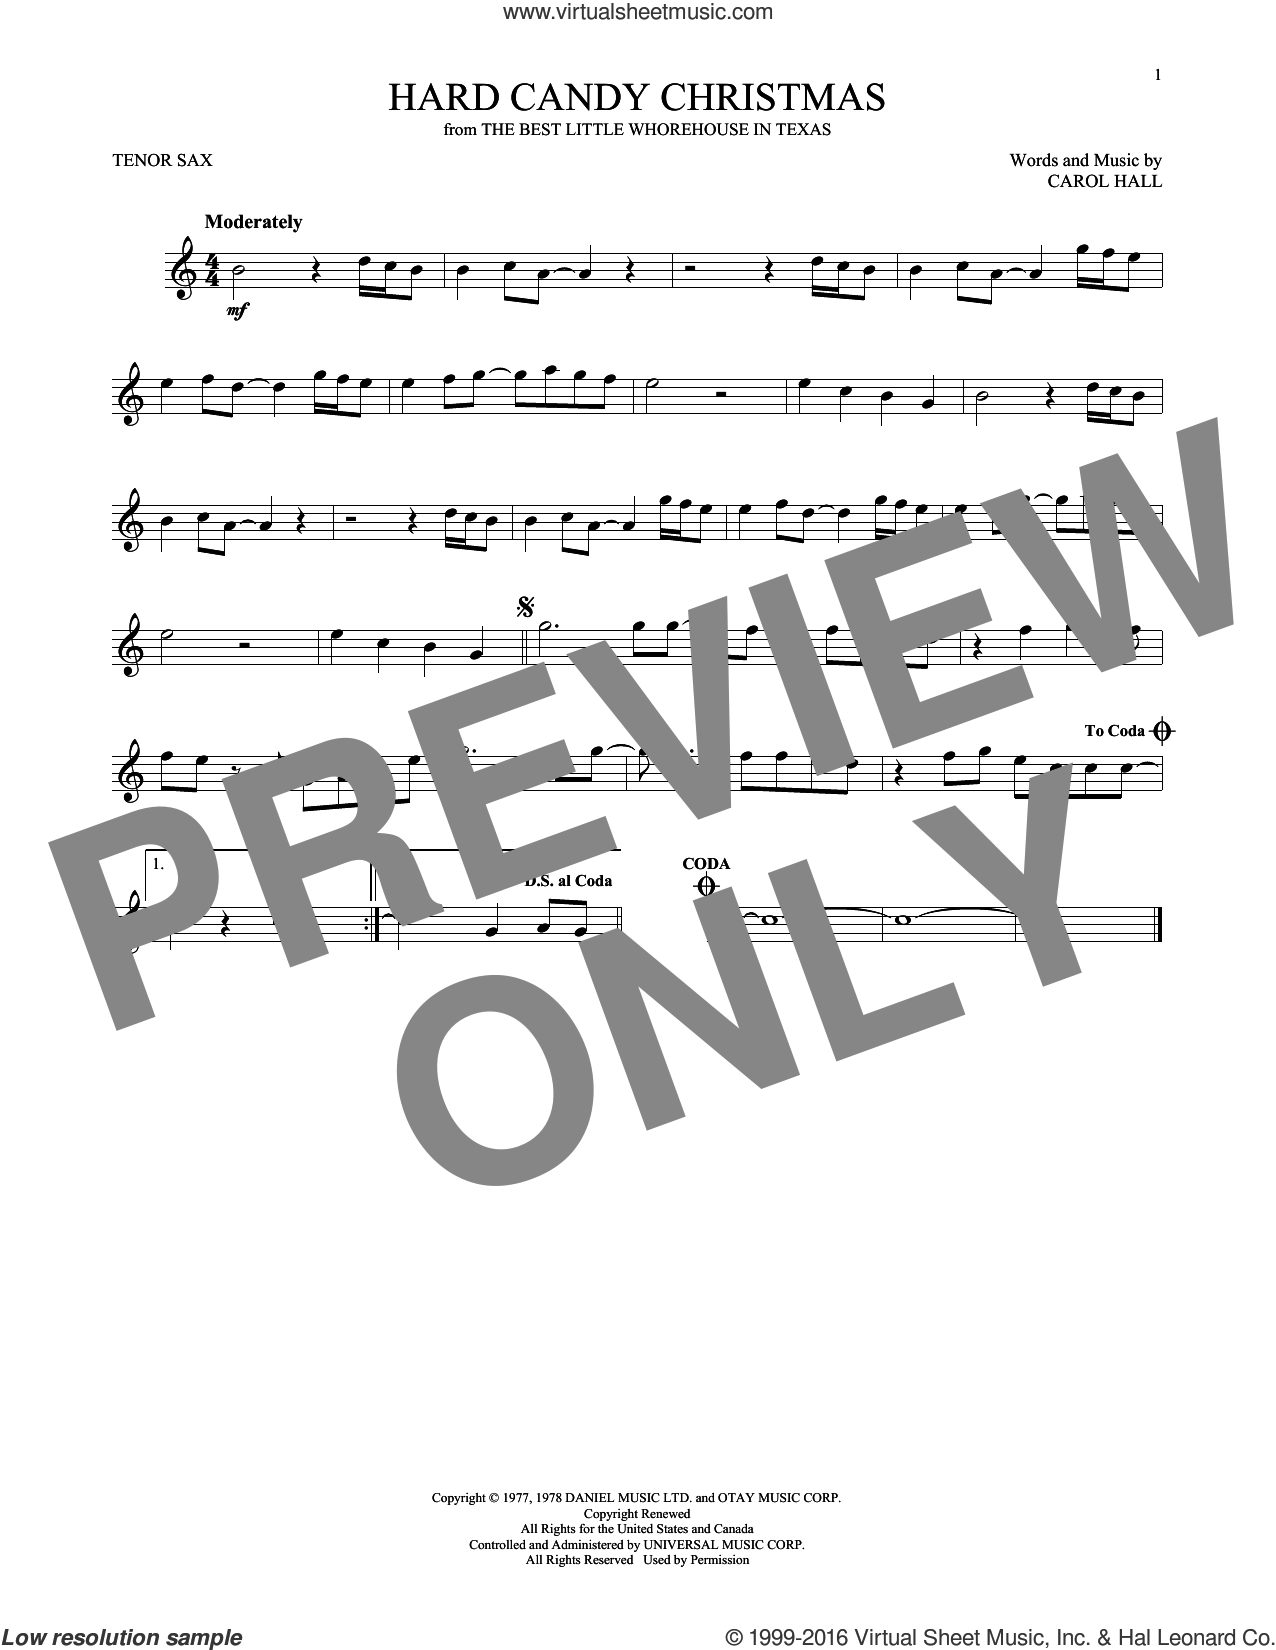 Hard Candy Christmas sheet music for tenor saxophone solo by Carol Hall and Dolly Parton. Score Image Preview.